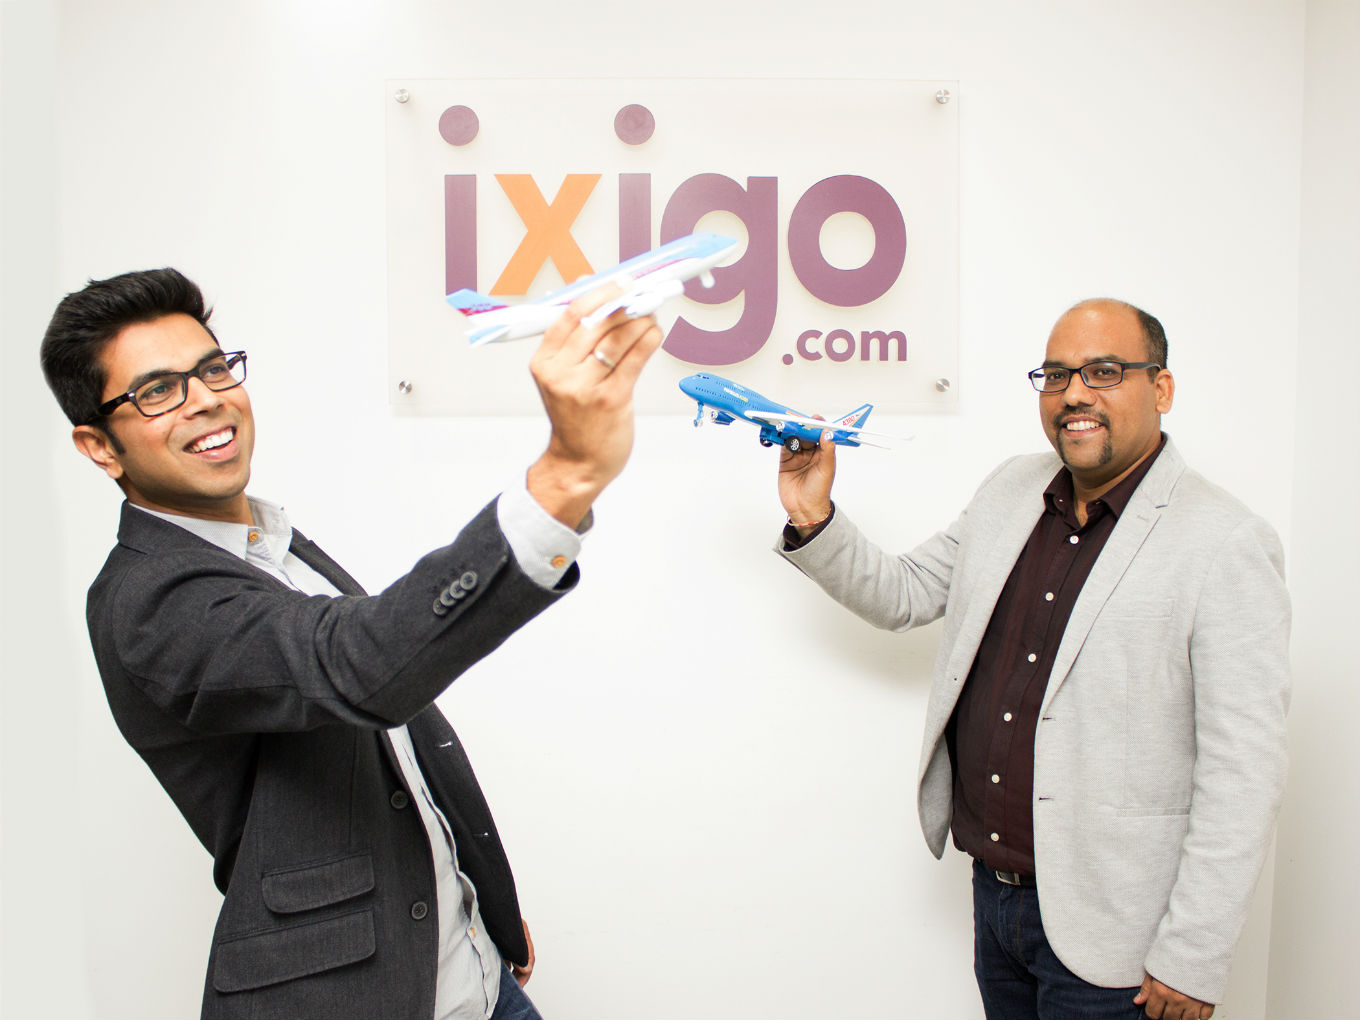 Exclusive: ixigo Expands Online Travel Services To Include Entertainment Content